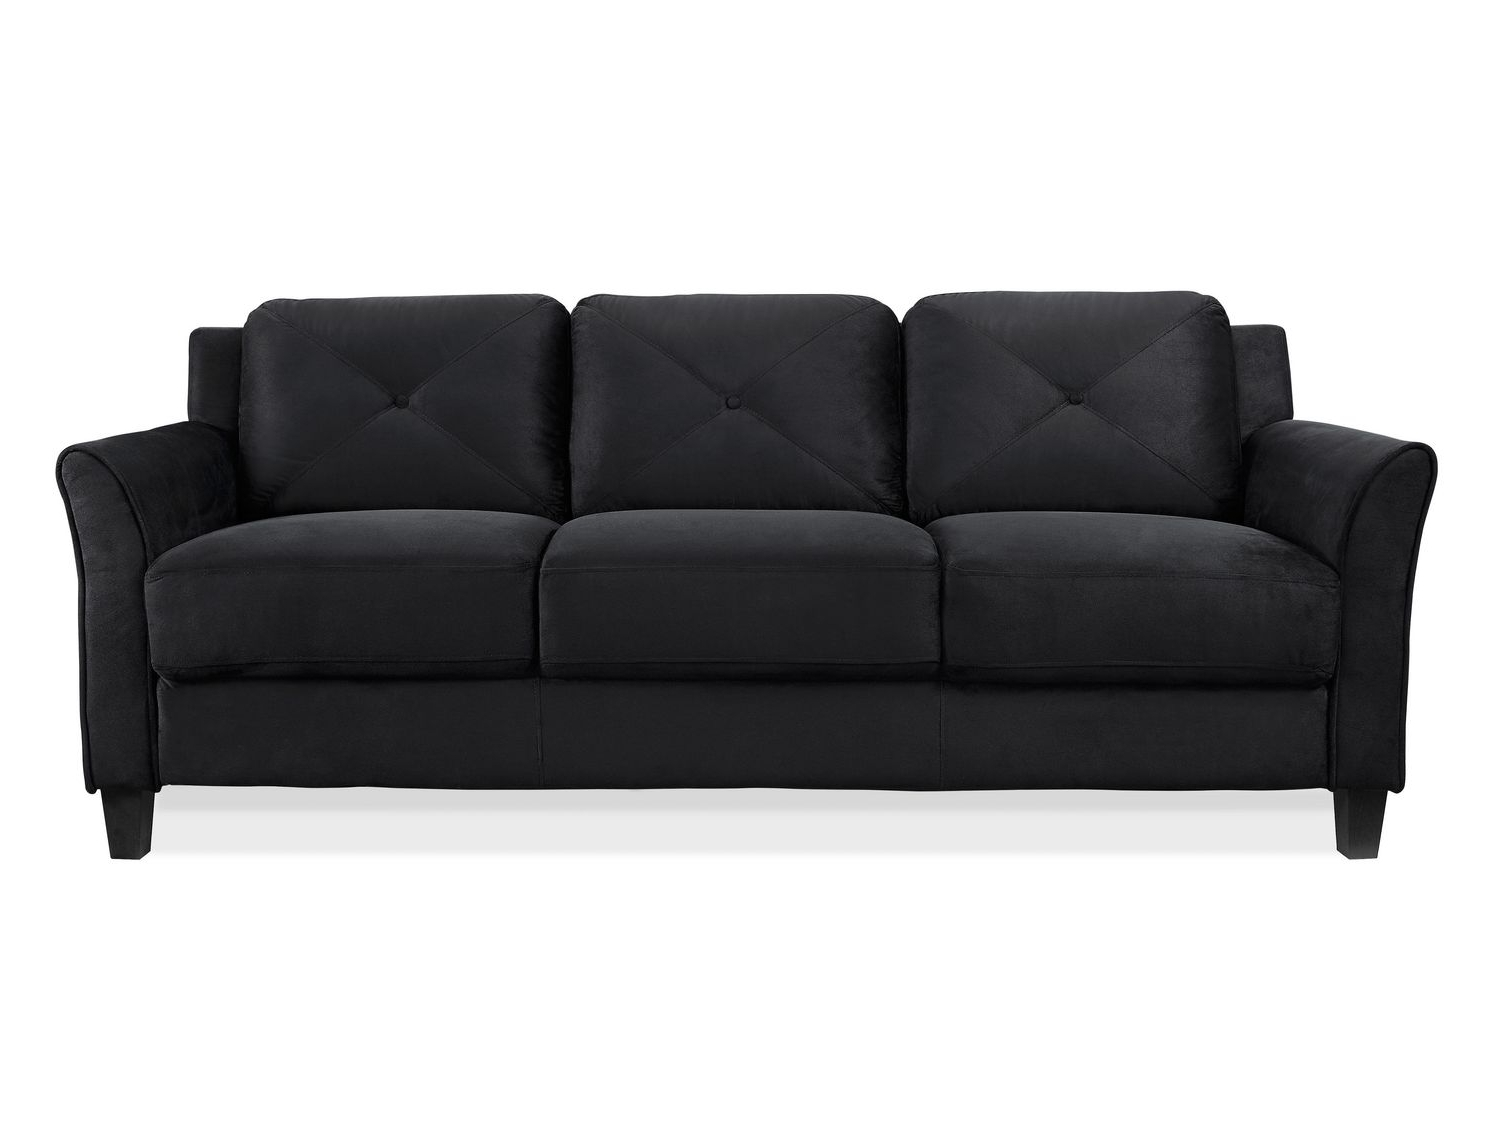 Most Recent Sofa : Cheap Sectional Sofas Walmart Walmart Tablet Samsung Camas With Sectional Sofas At Walmart (View 7 of 20)